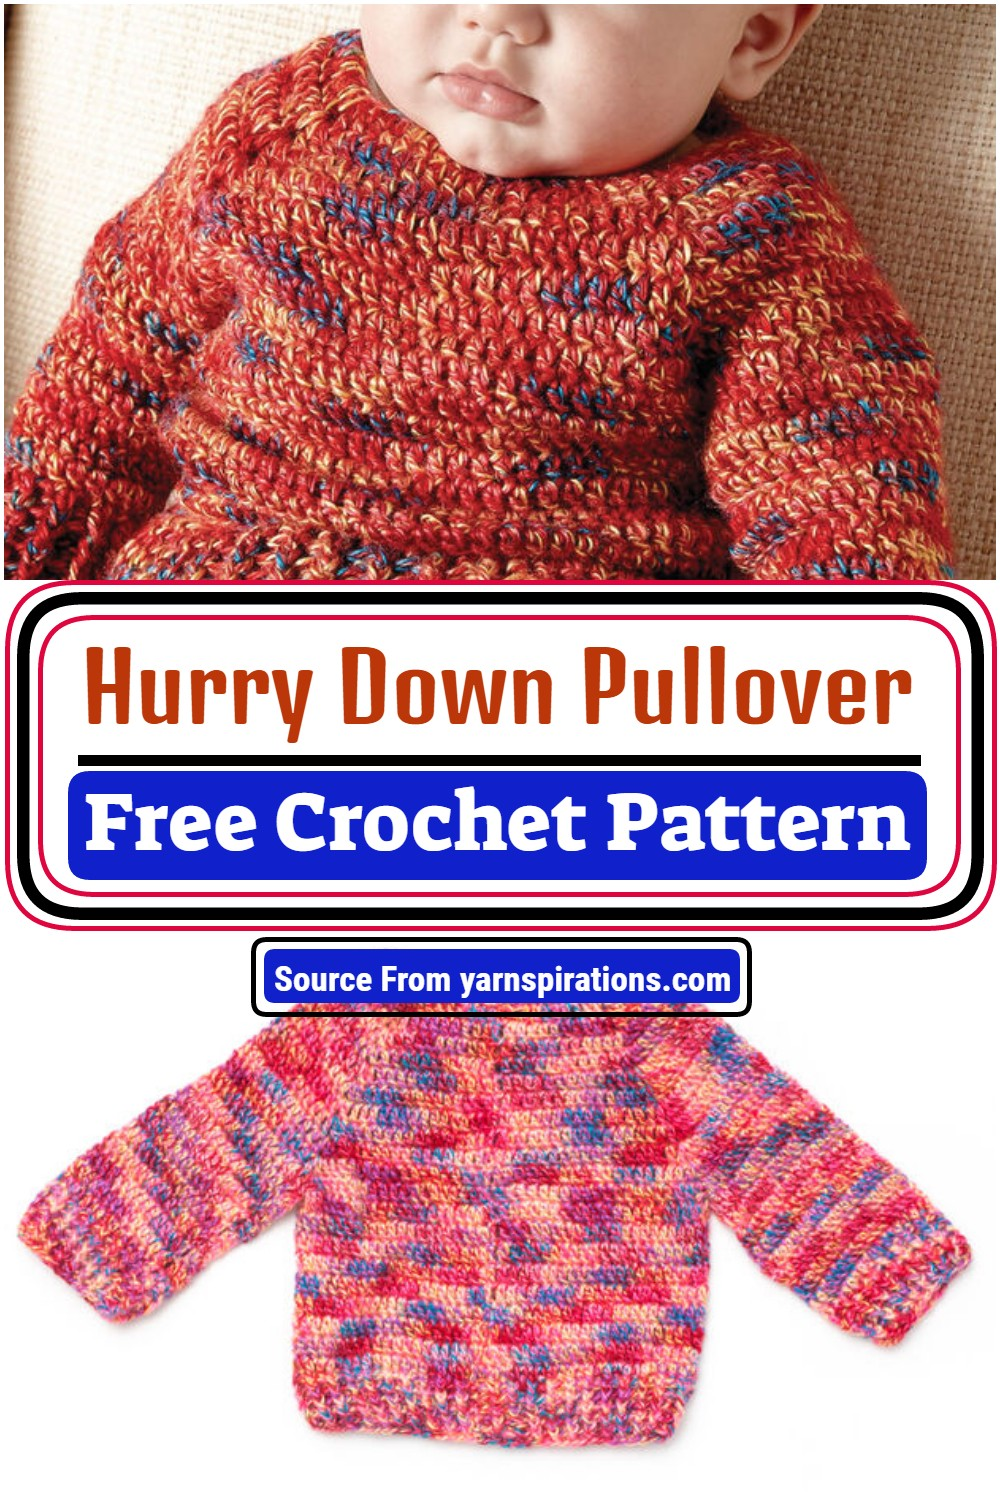 Hurry Down Crochet Pullover